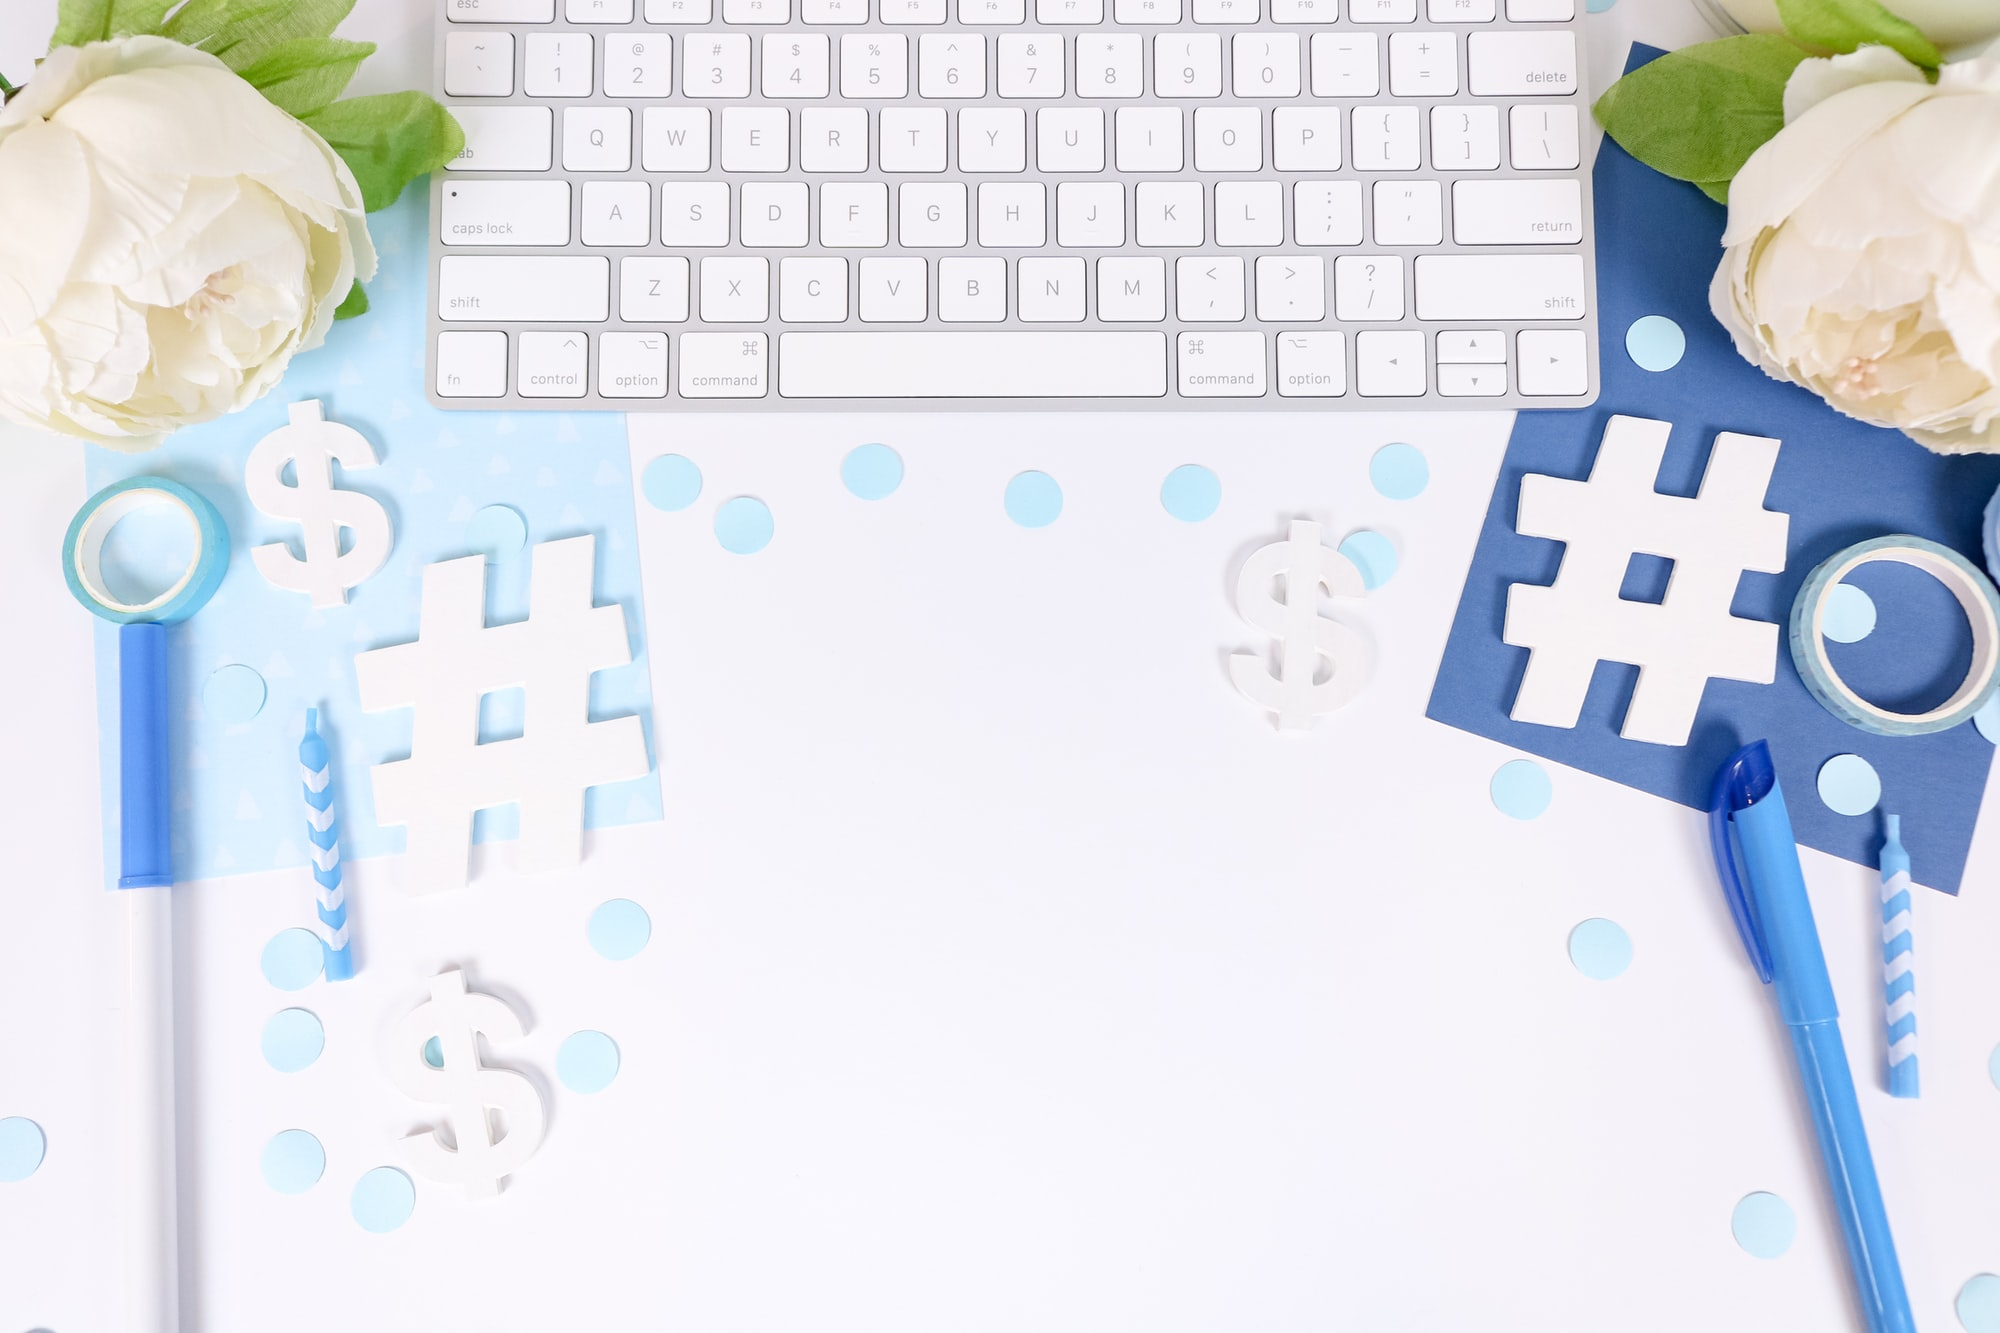 100+ Hashtags for days of the week for Instagram, Twitter and LinkedIn